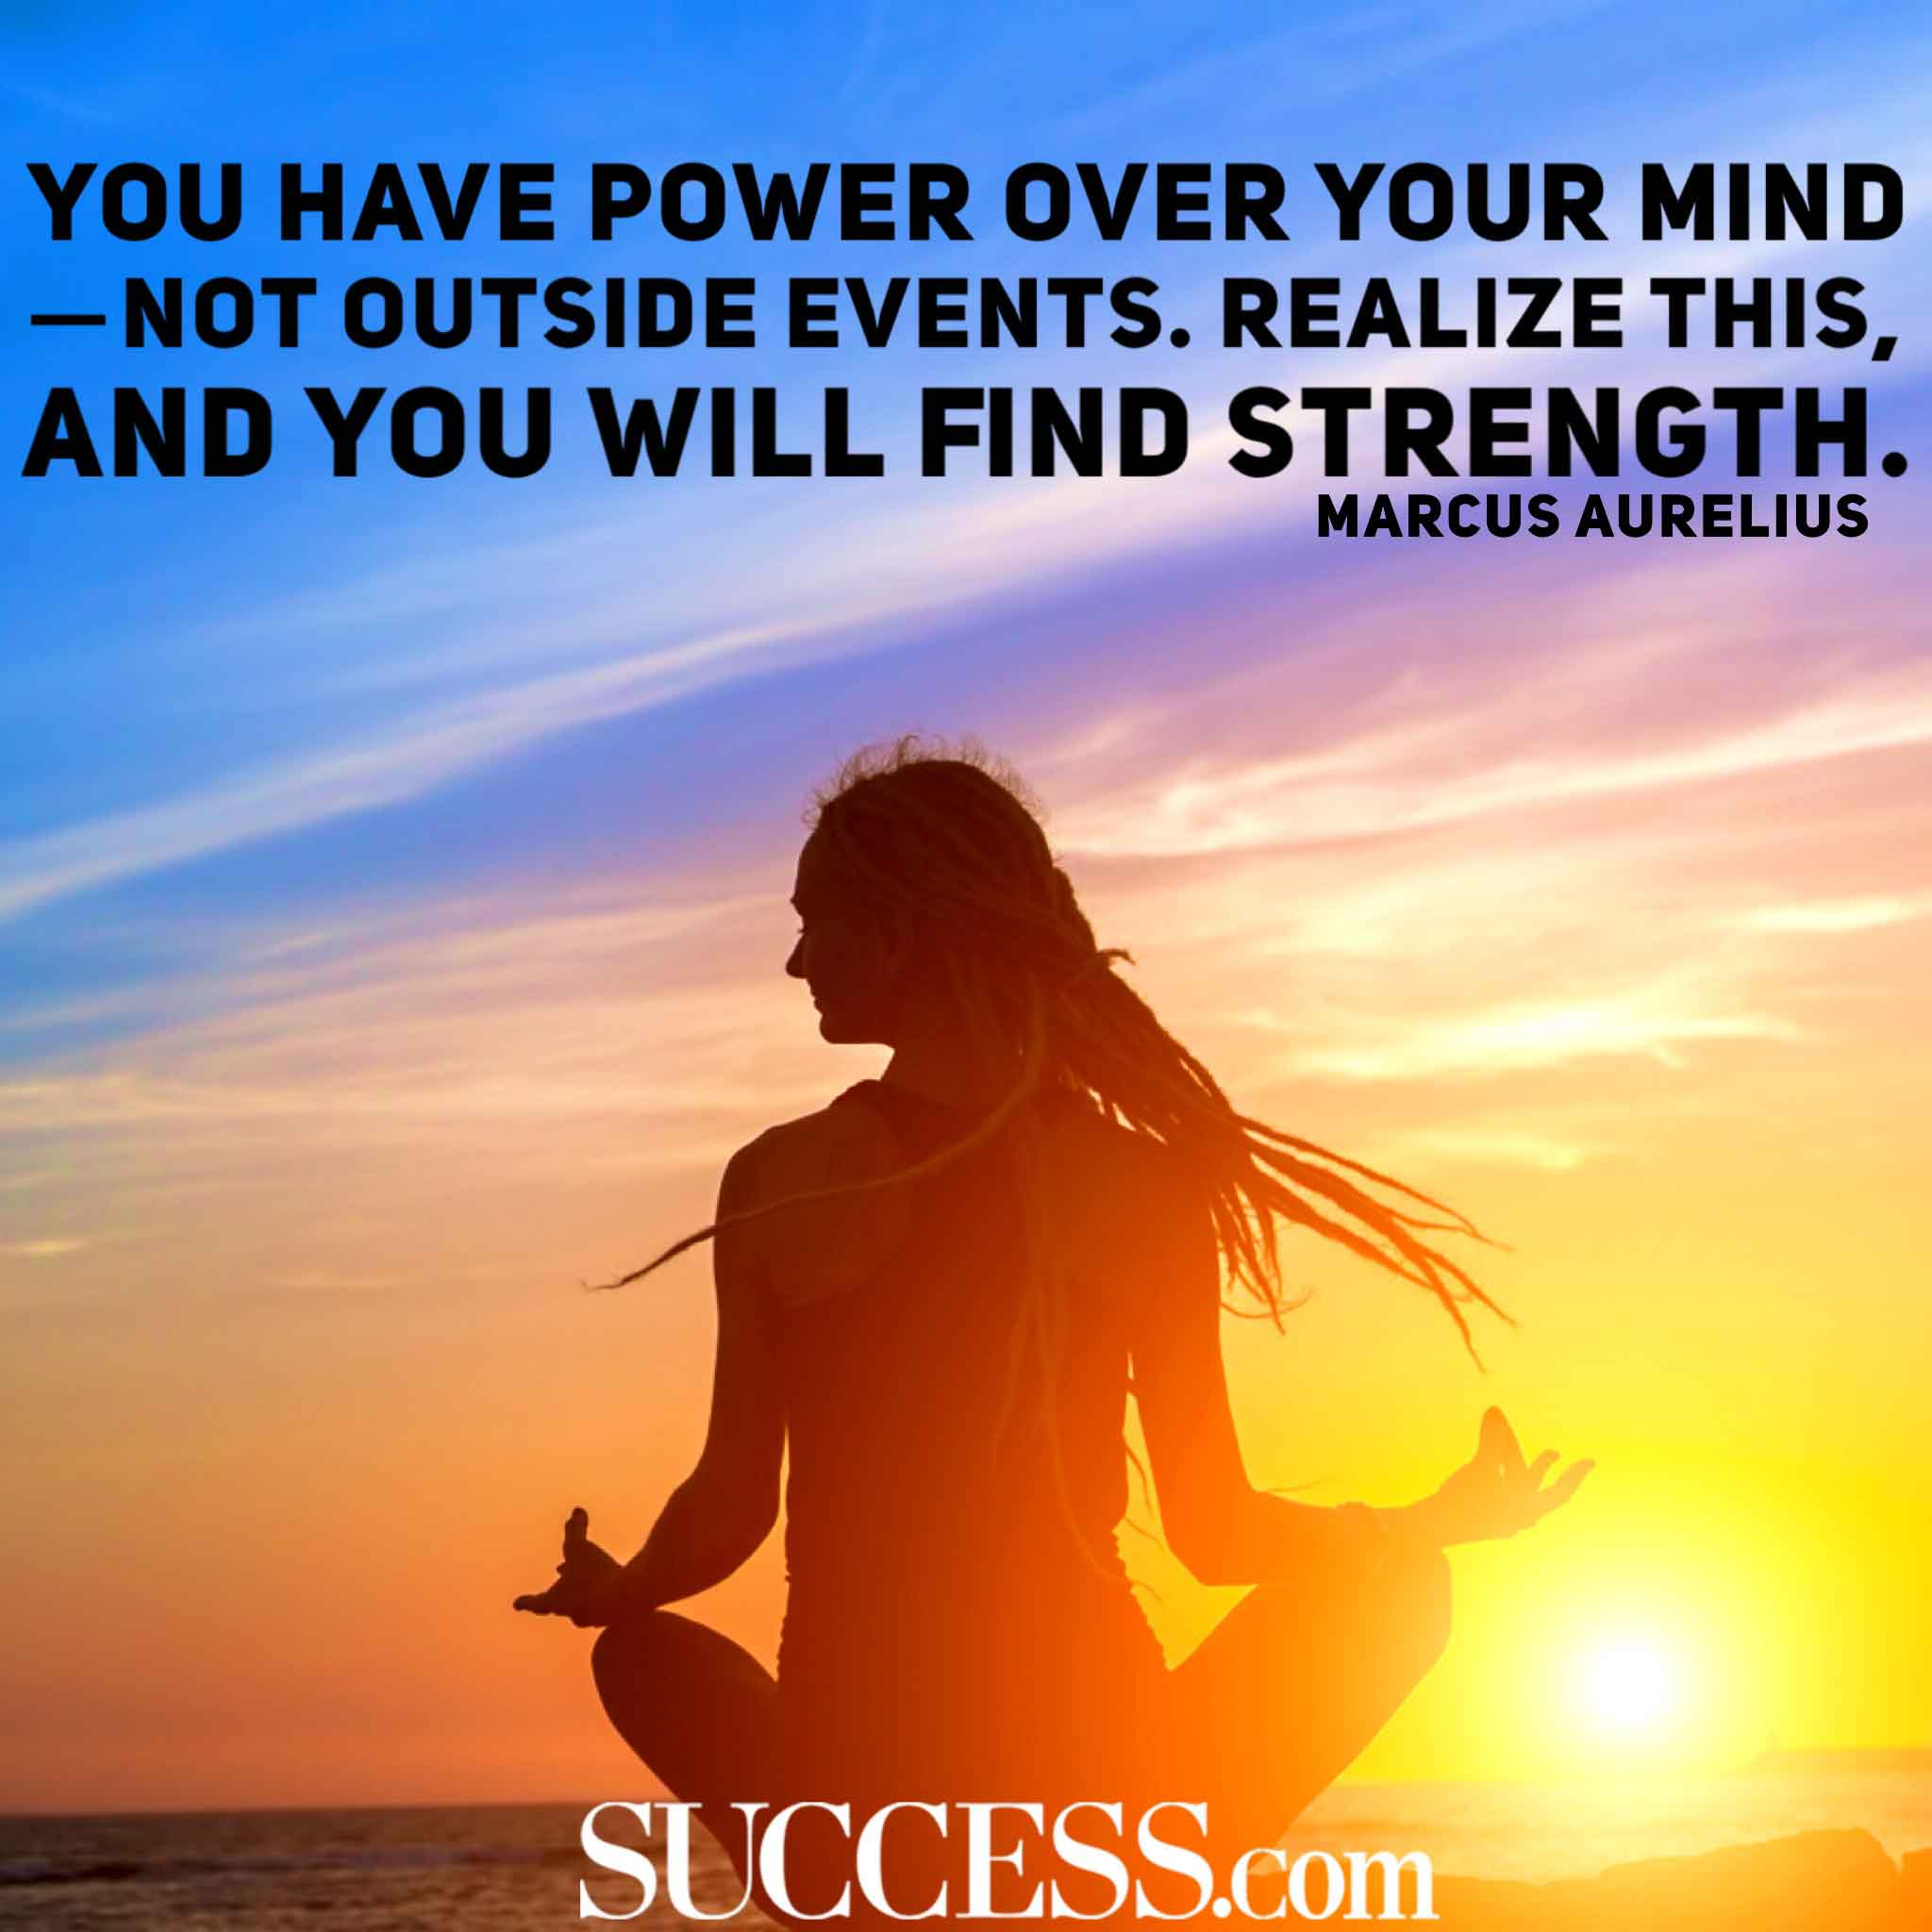 Inspirational Quotes About Strength | 13 Powerful Quotes About Inner Strength